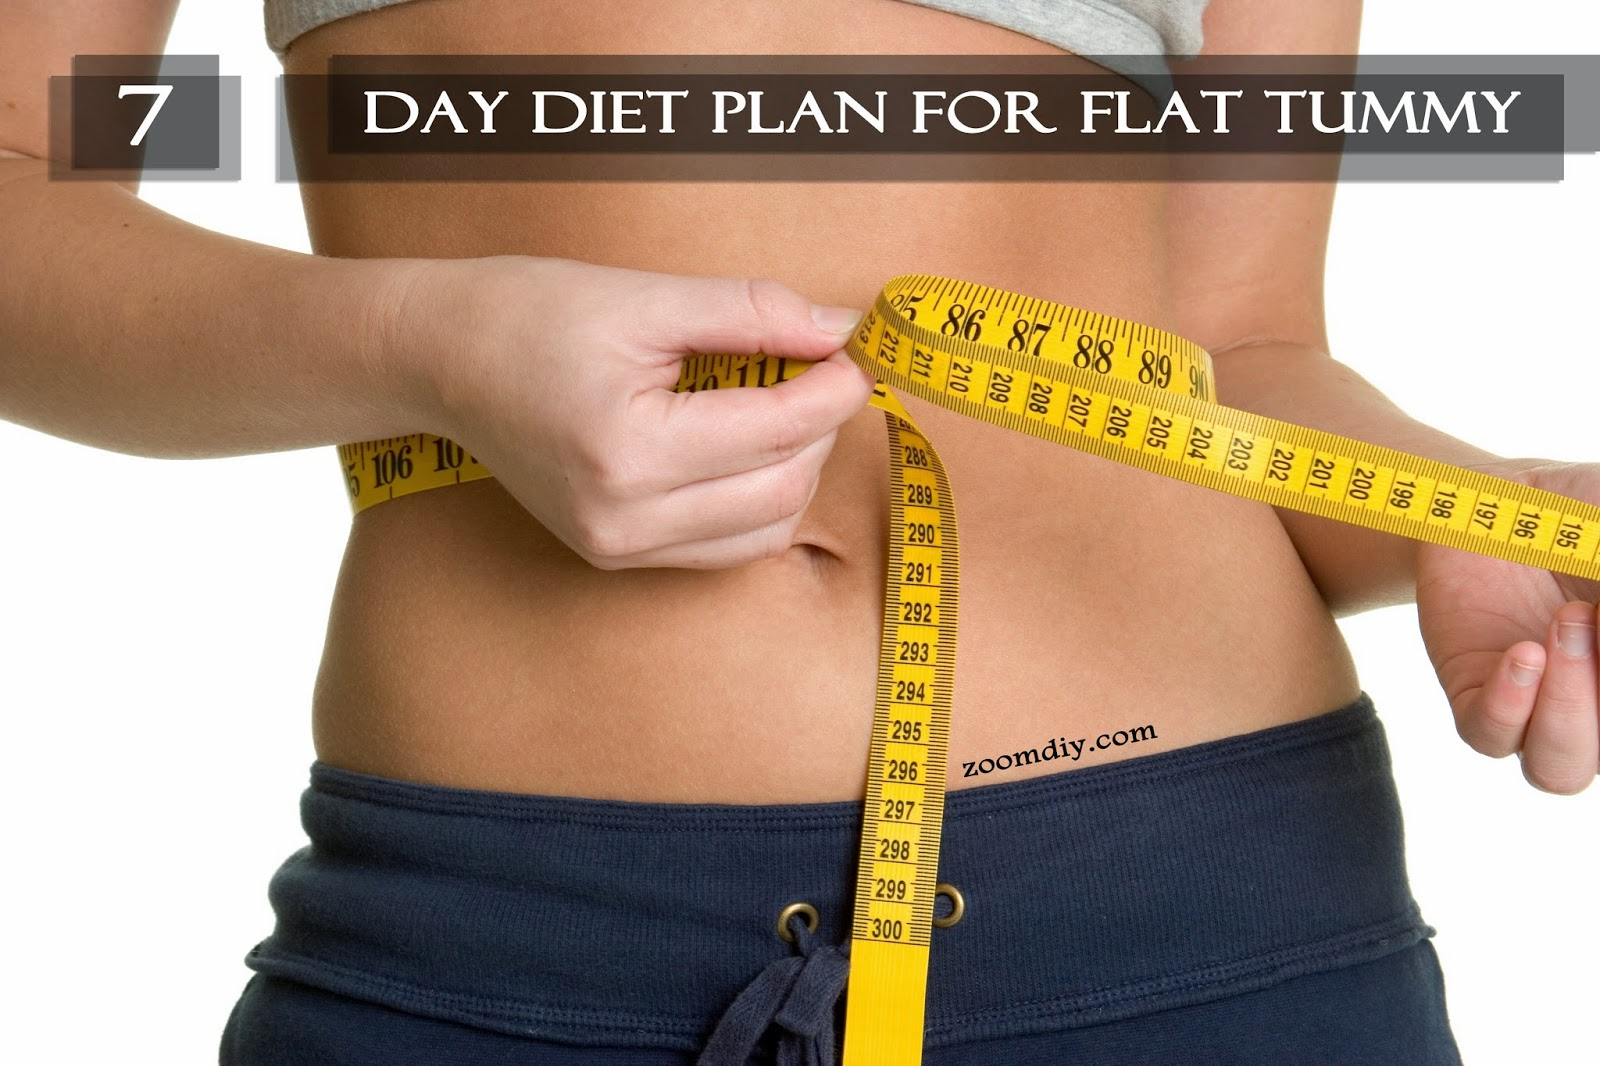 7 Day Diet Plan For Flat Tummy